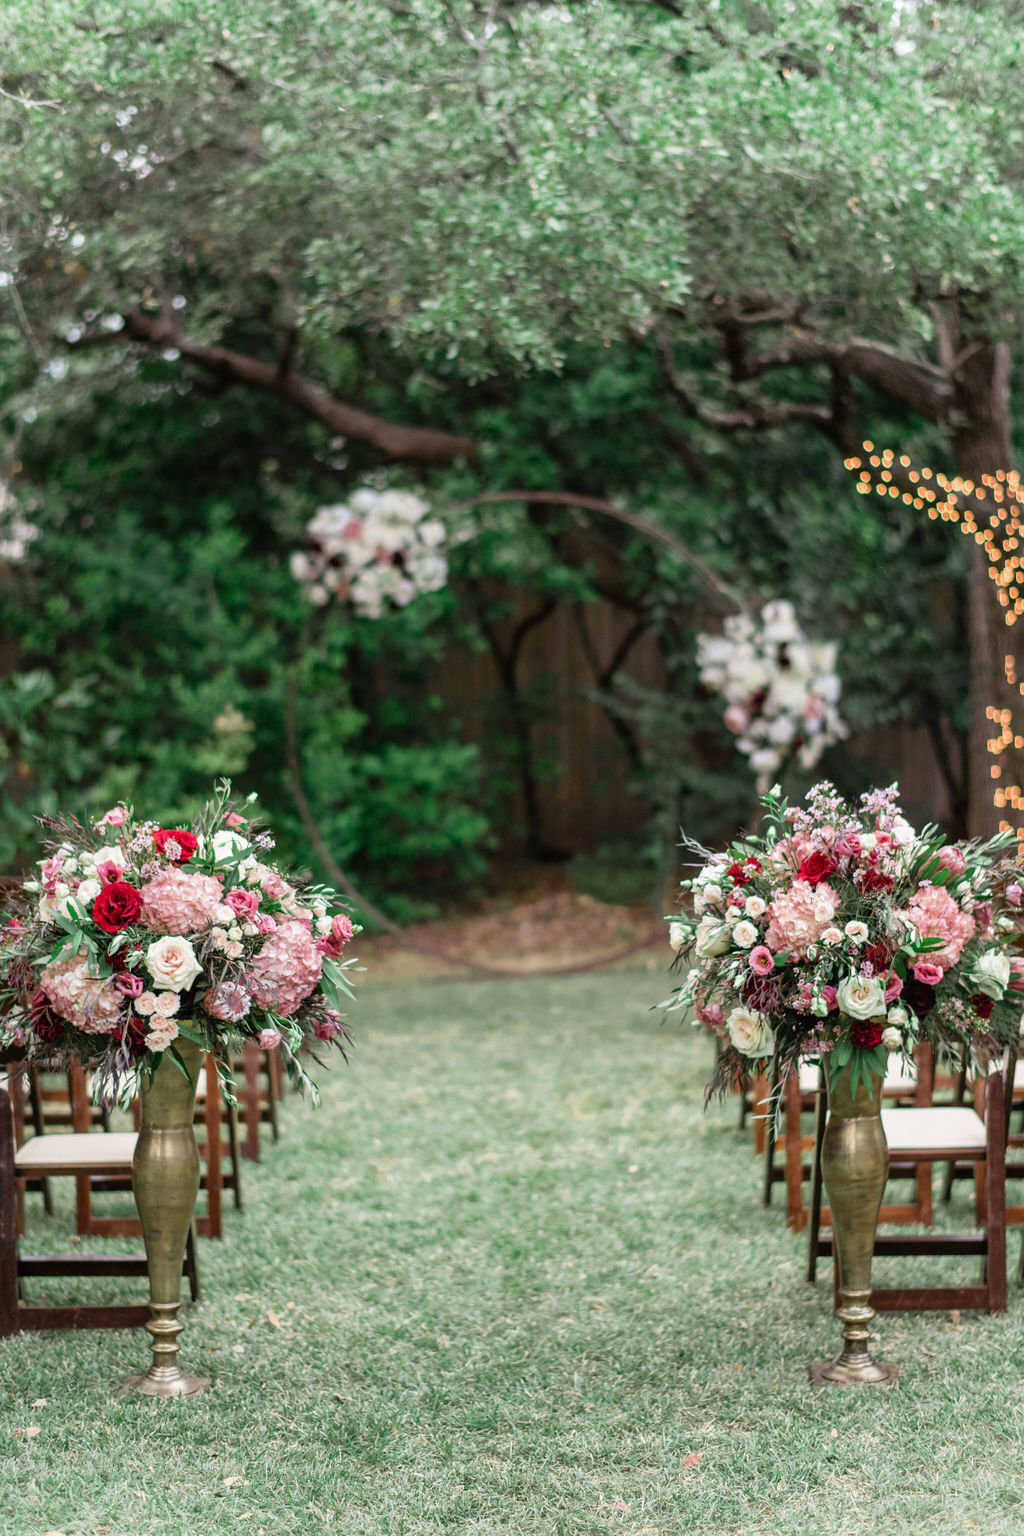 Kristina&Jason-WeddingBlogPost-BackyardWedding-AustinTexas-AprilMaeCreative-AustinWeddingPhotographer-54